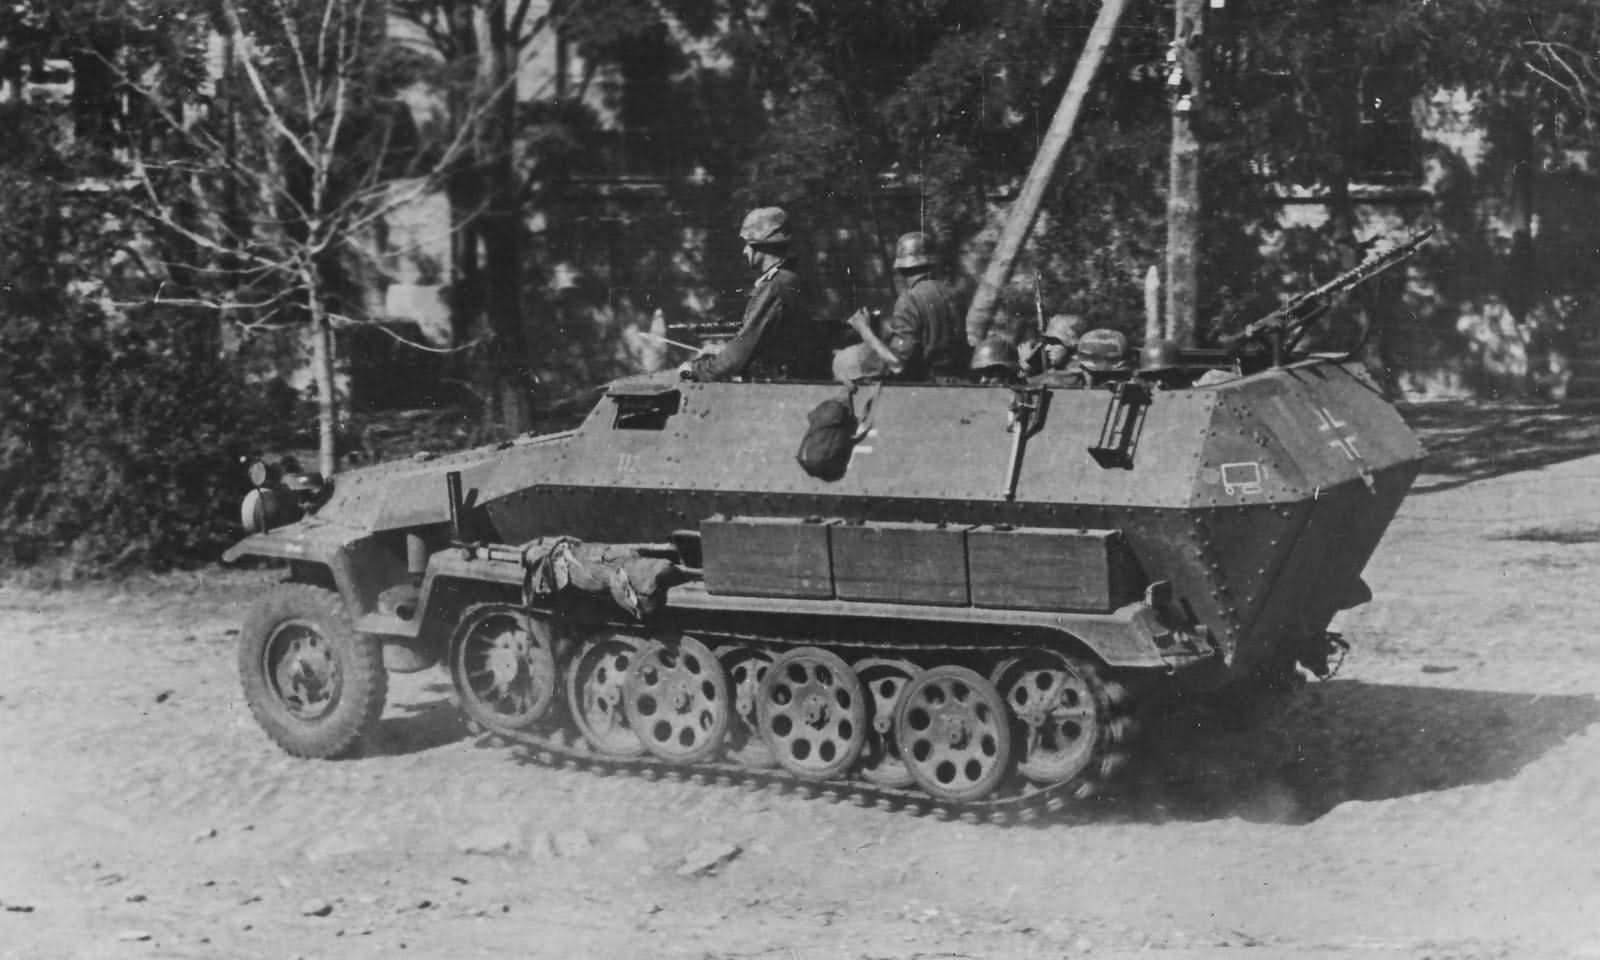 SdKfz 251/1 armored personnel carrier